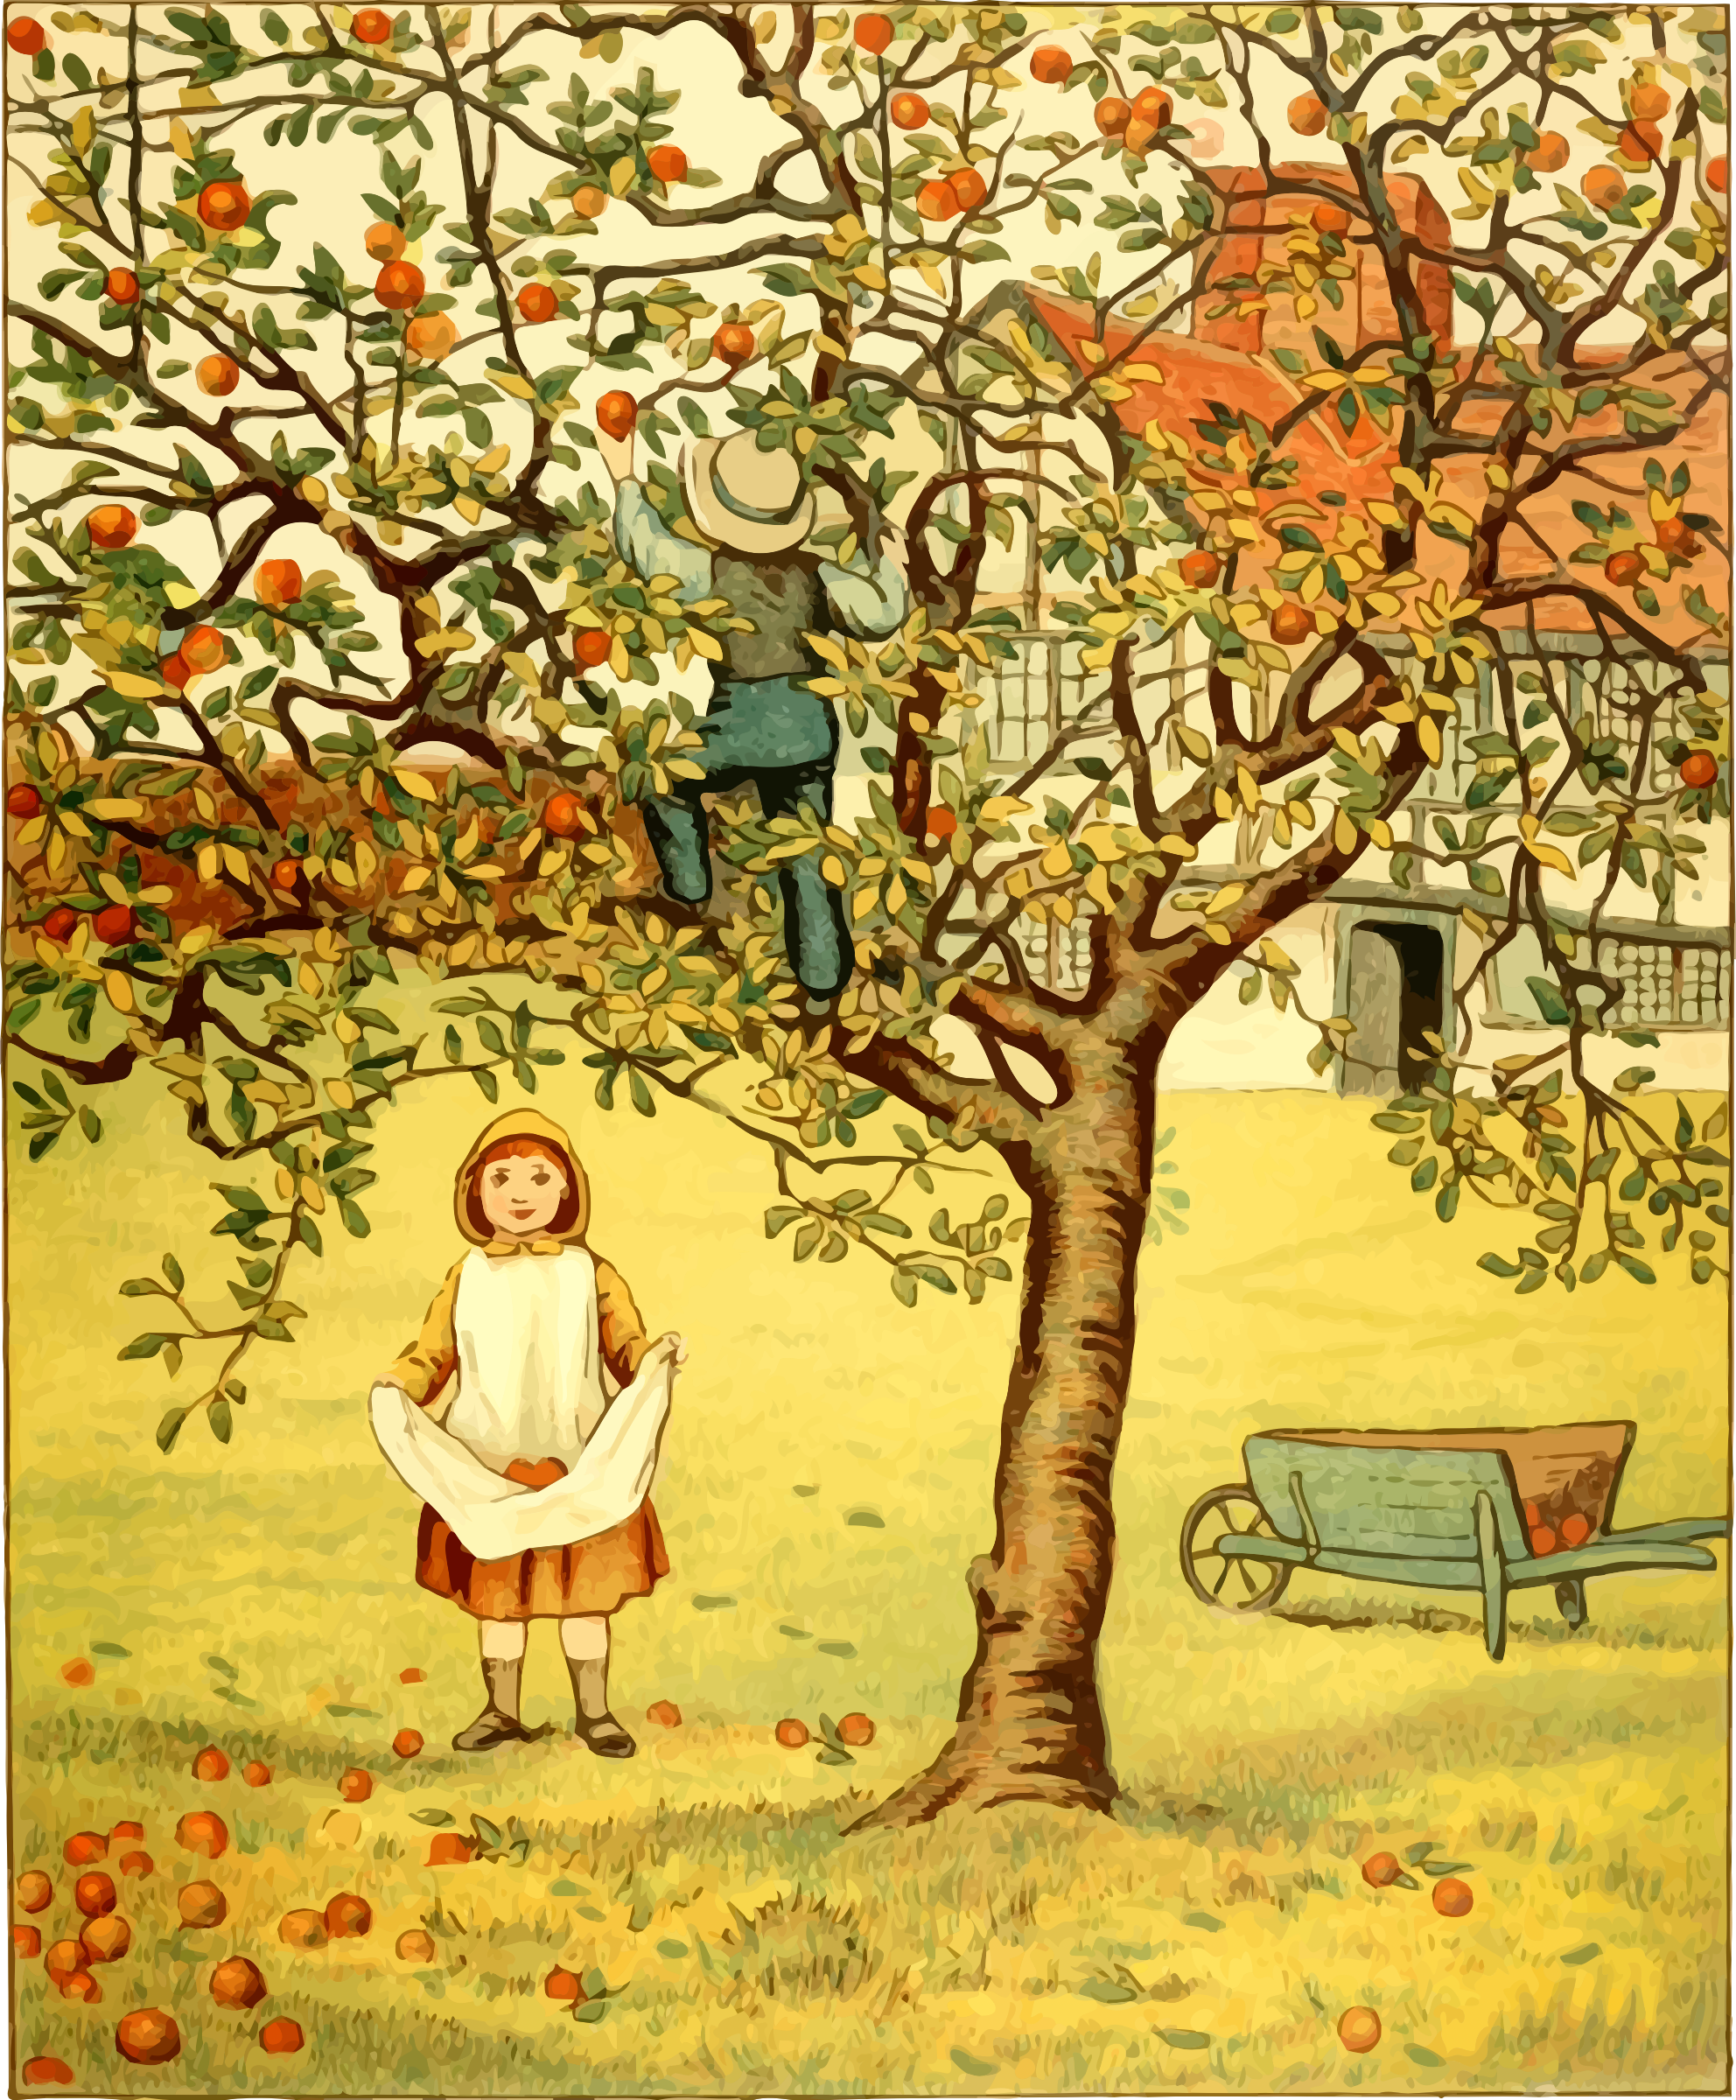 Picking apples by Firkin